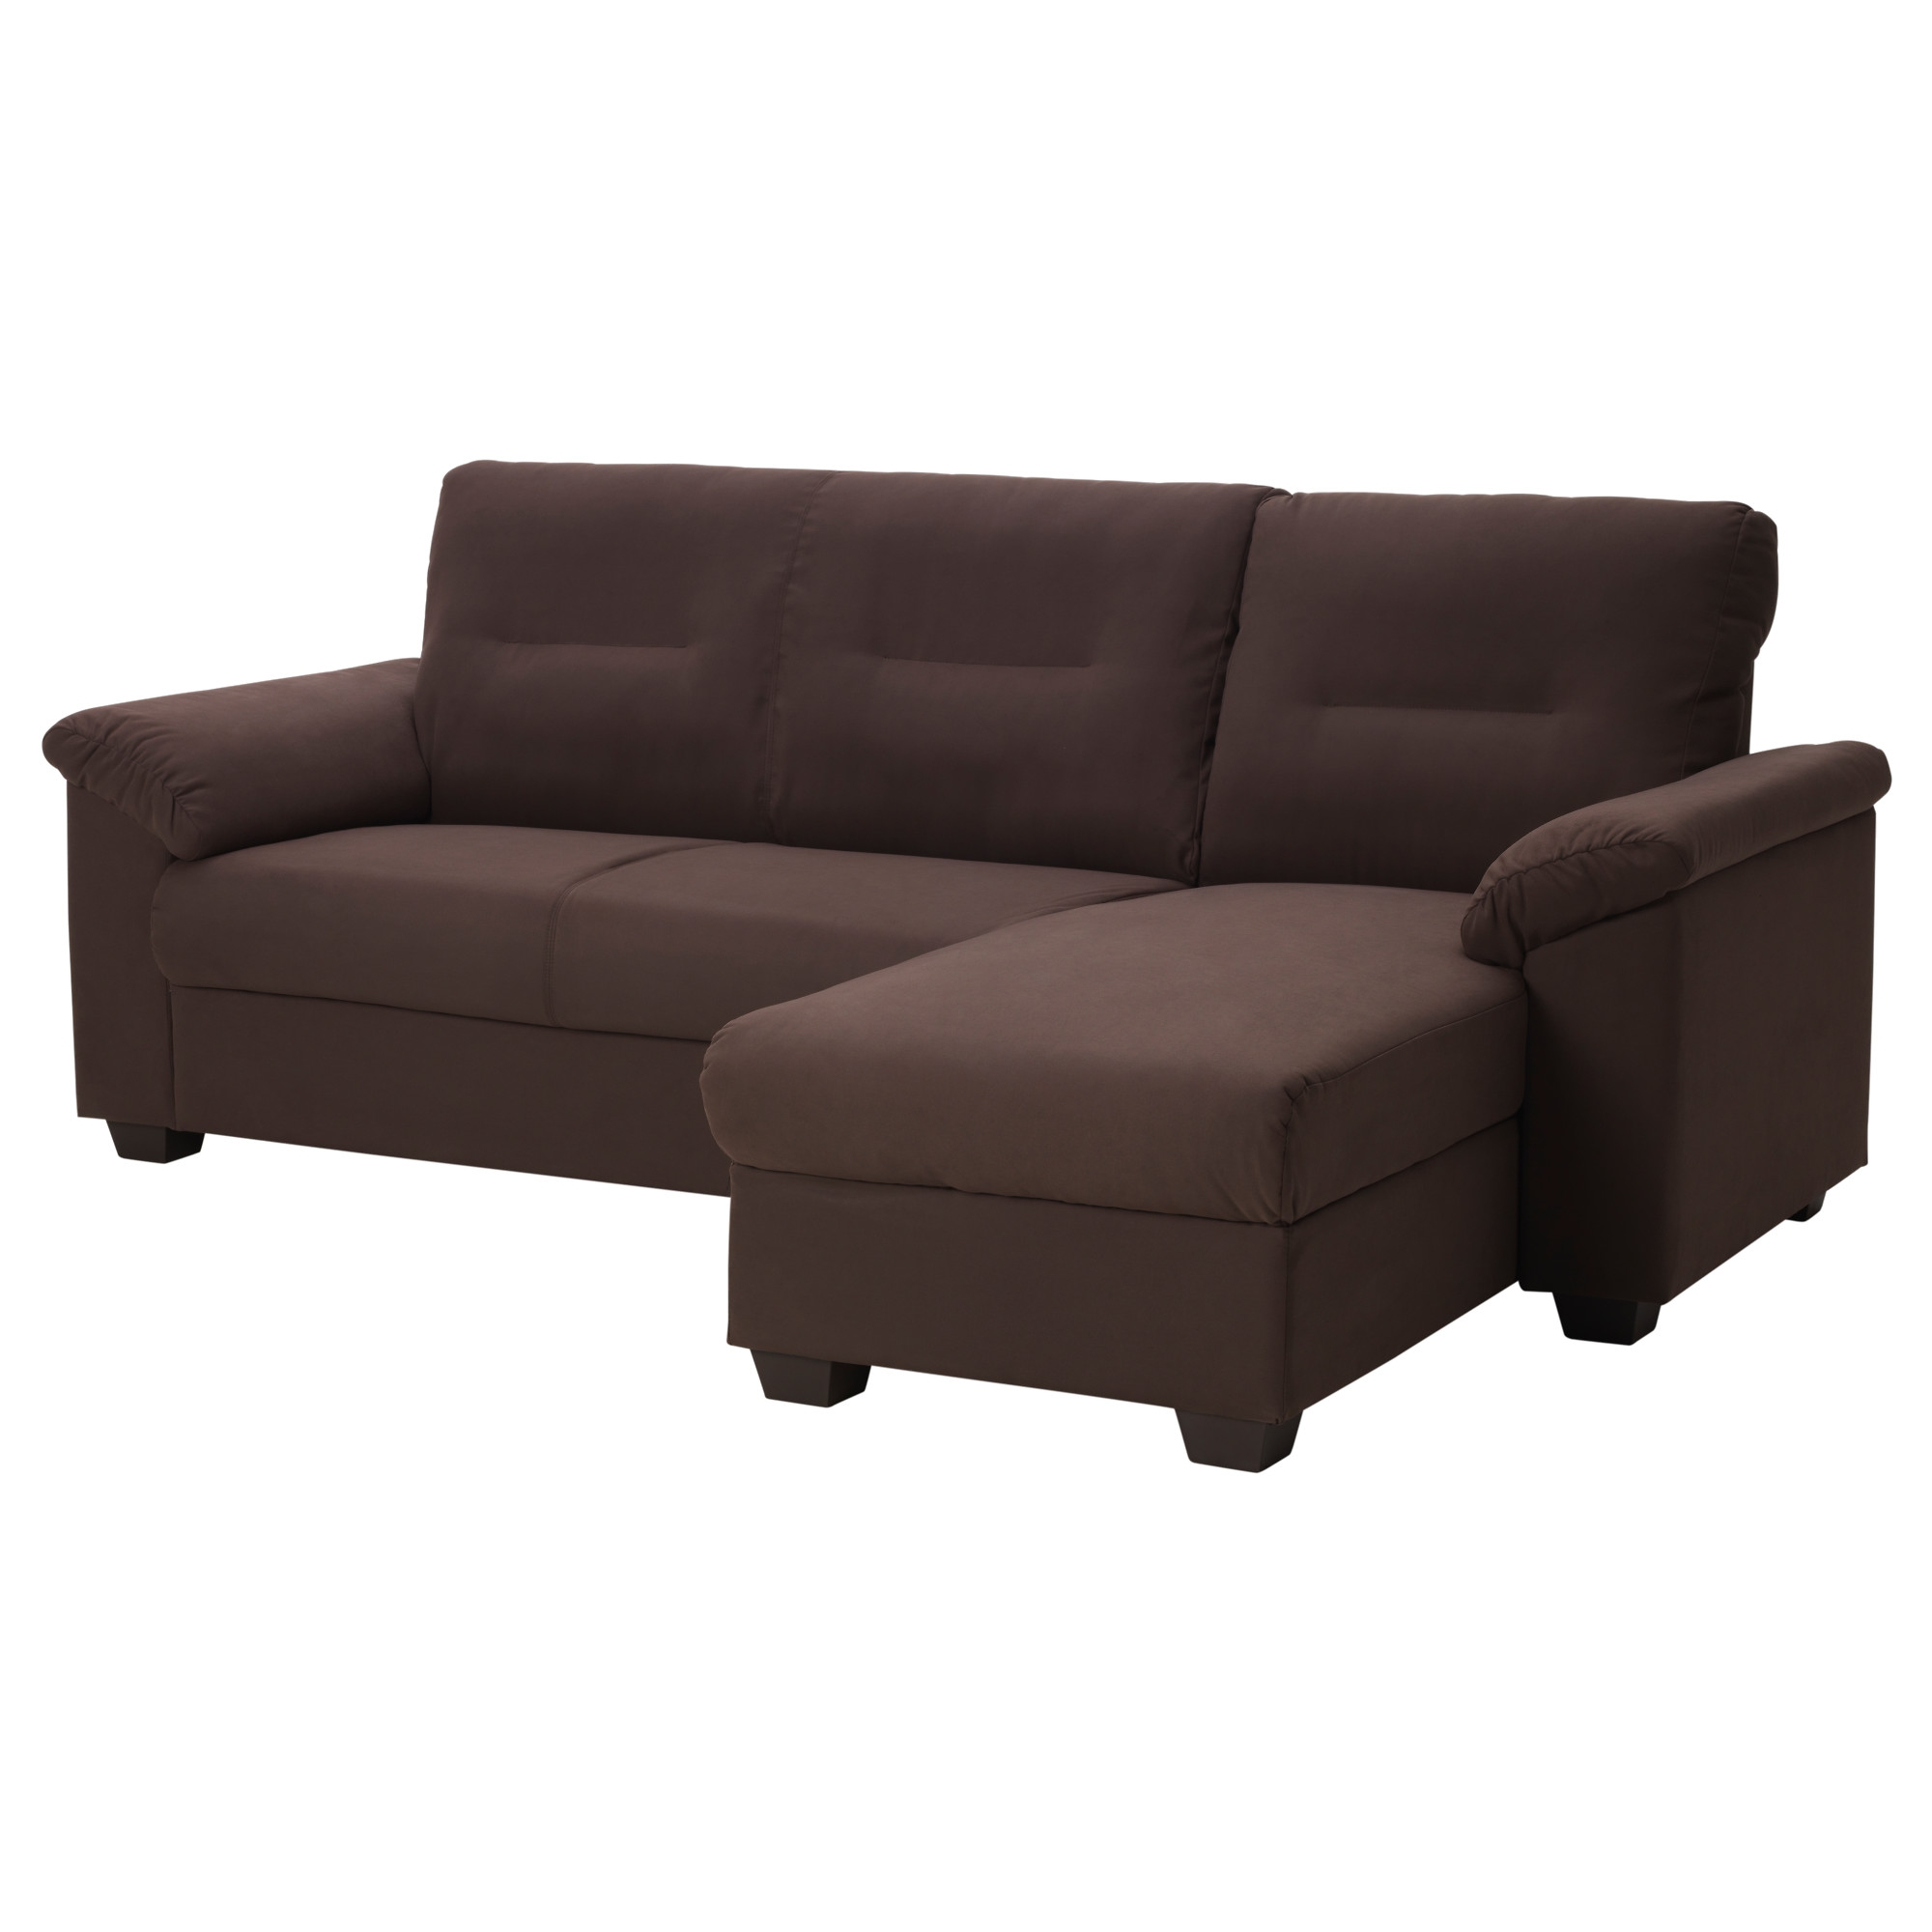 Fabric Sectional Sofas Modern Contemporary Ikea Regarding 7 Seat Sectional Sofa (Image 7 of 15)